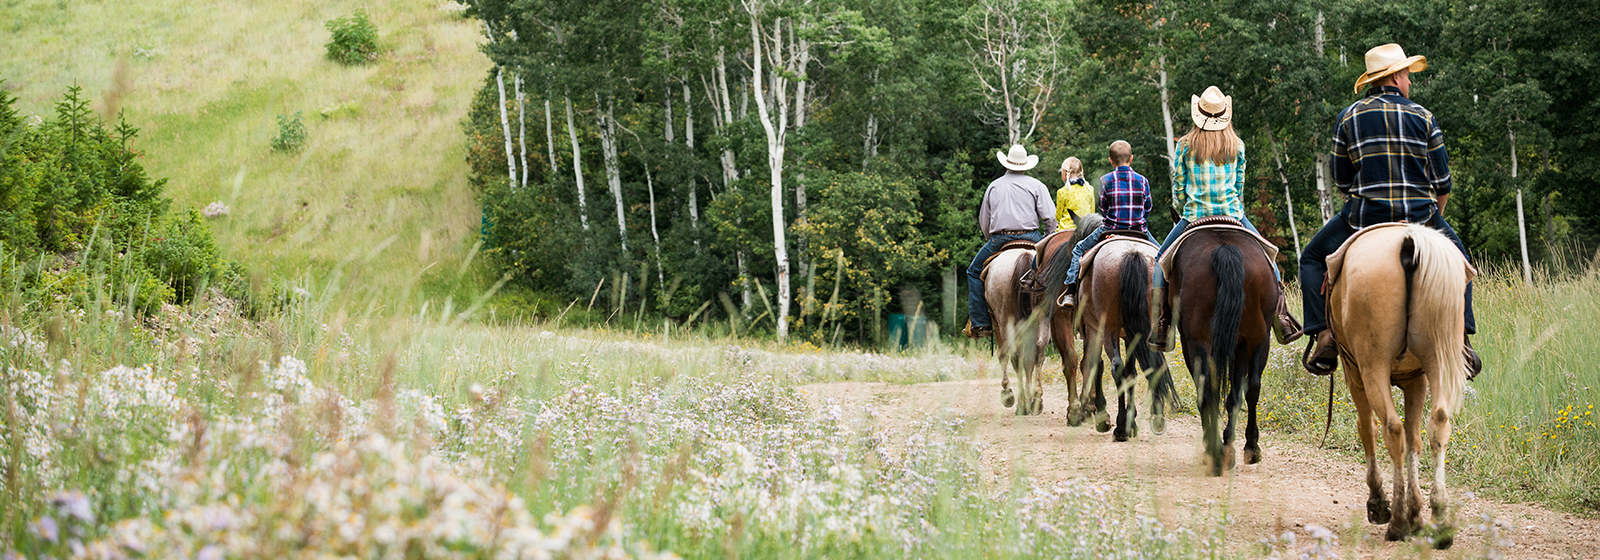 Horseback Riding Park City, Utah | Stables, Ranches & Outfitters